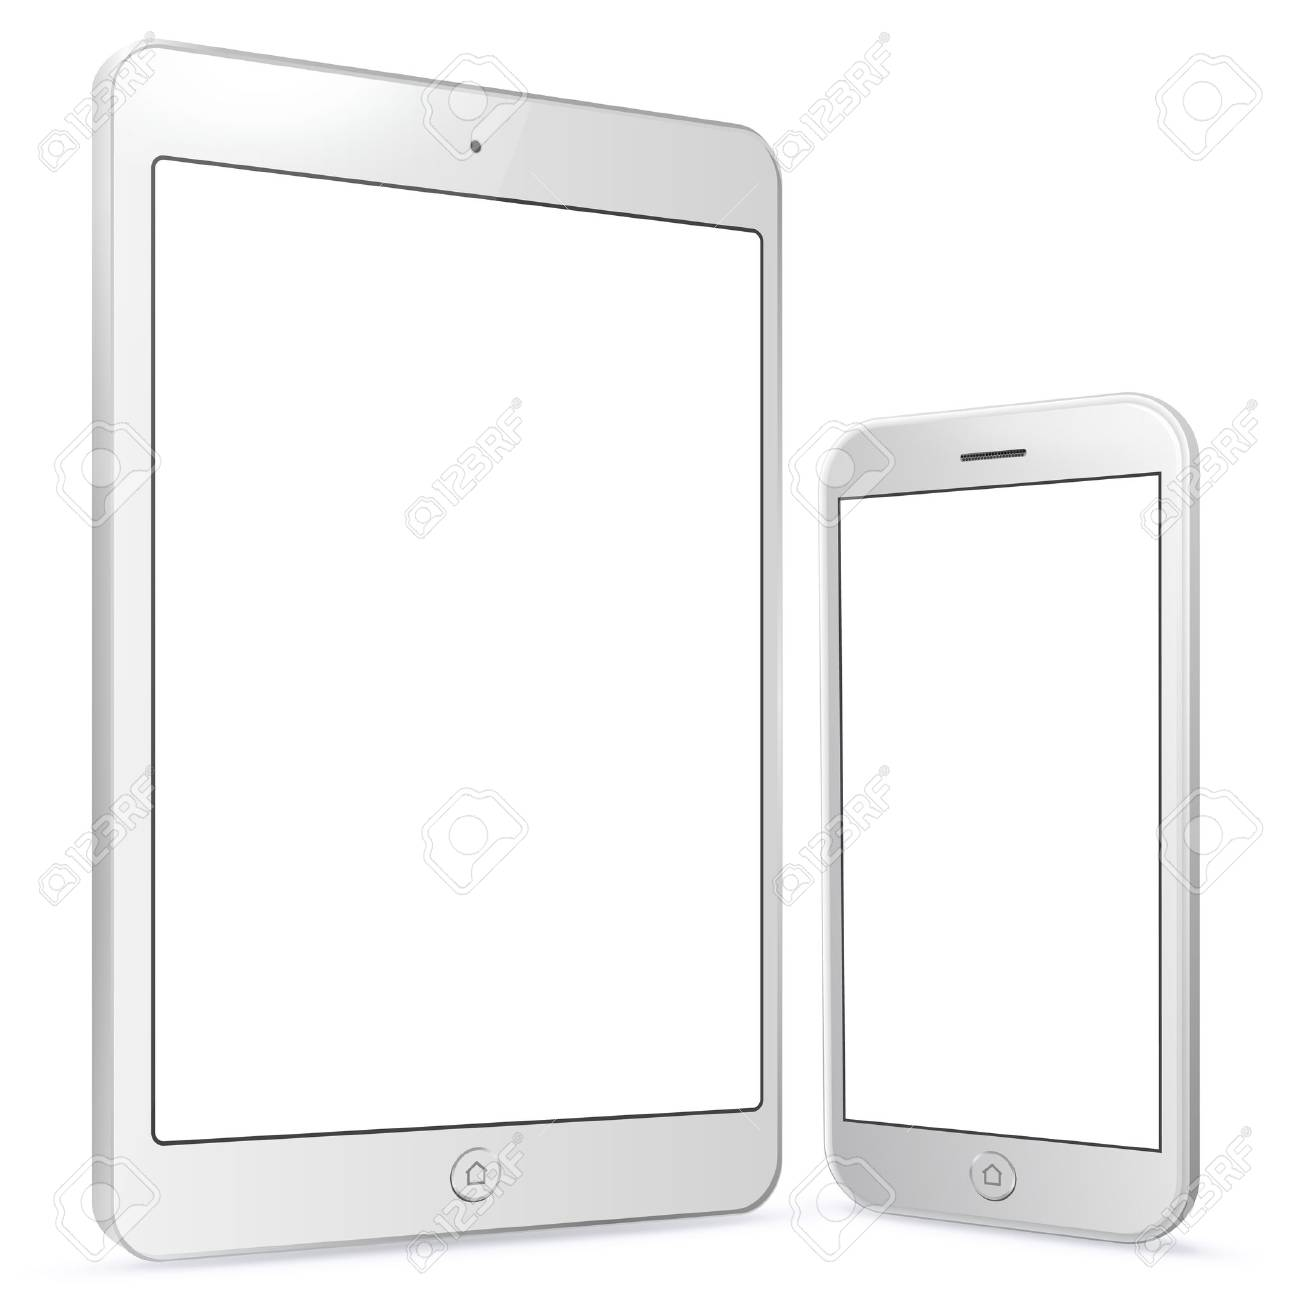 White Tablet Computer and Mobile Phone vector illustration. - 72096905